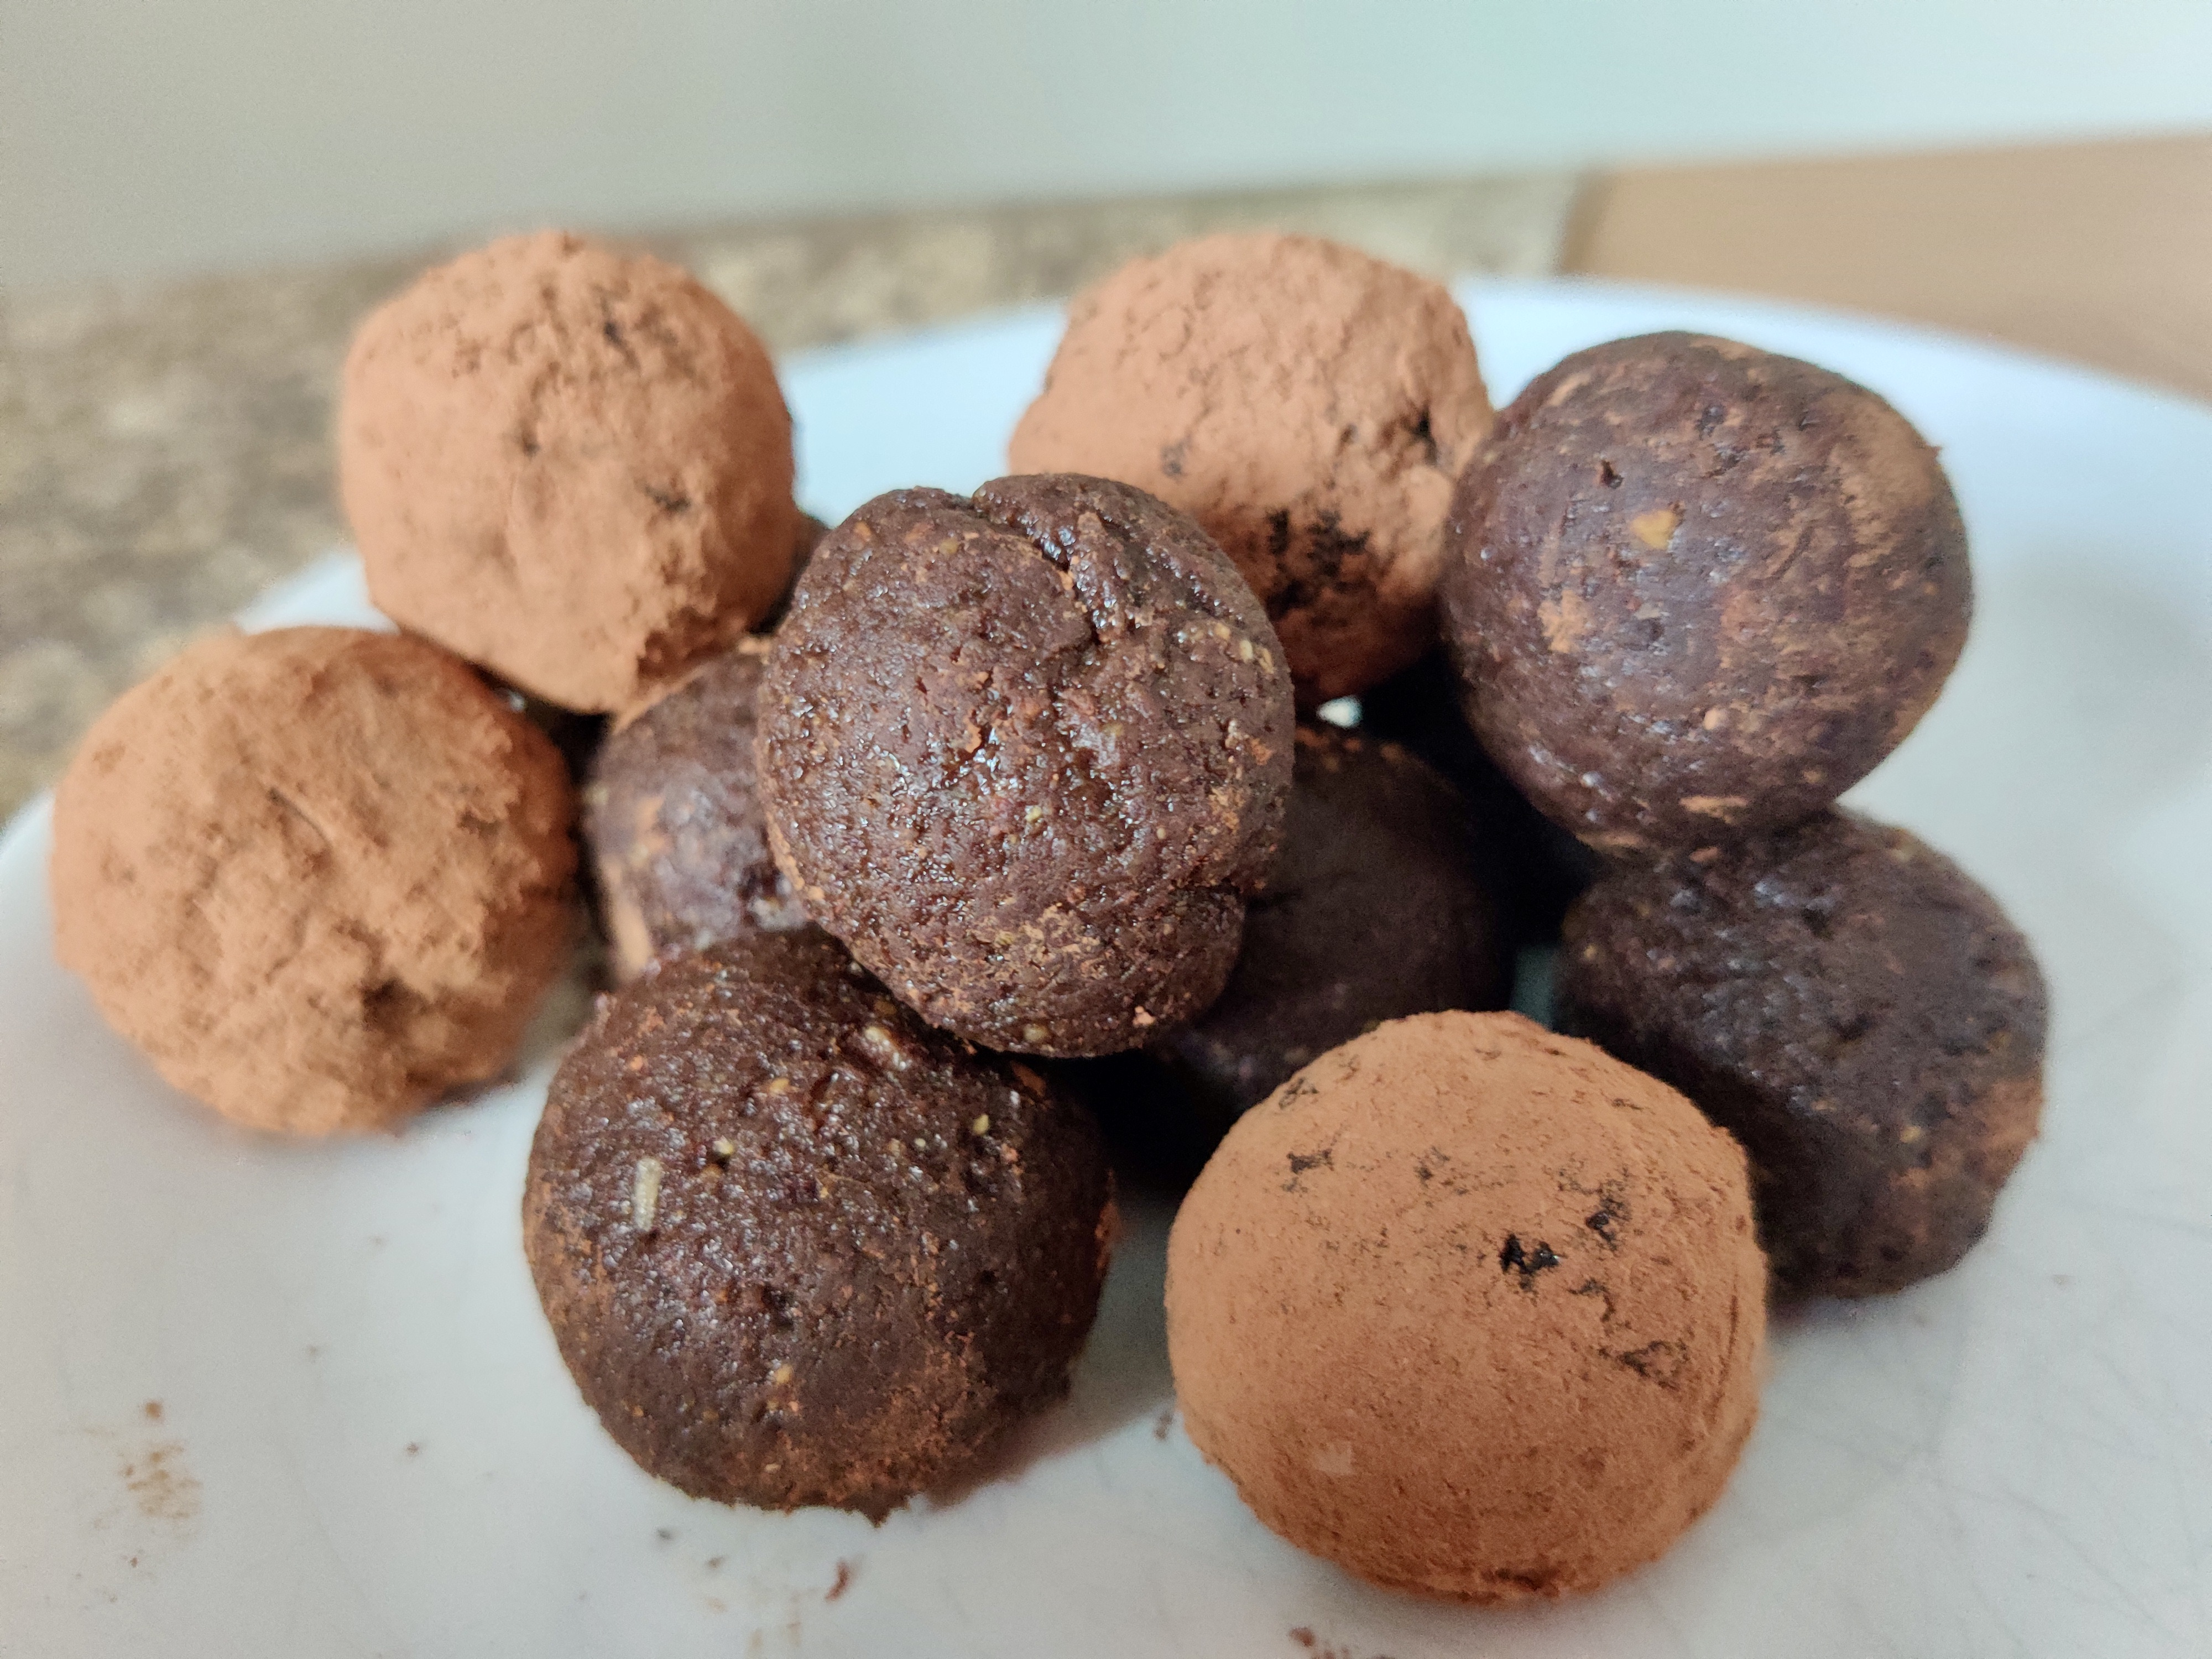 Pistachio and chocolate energy balls are quick to make and encourage